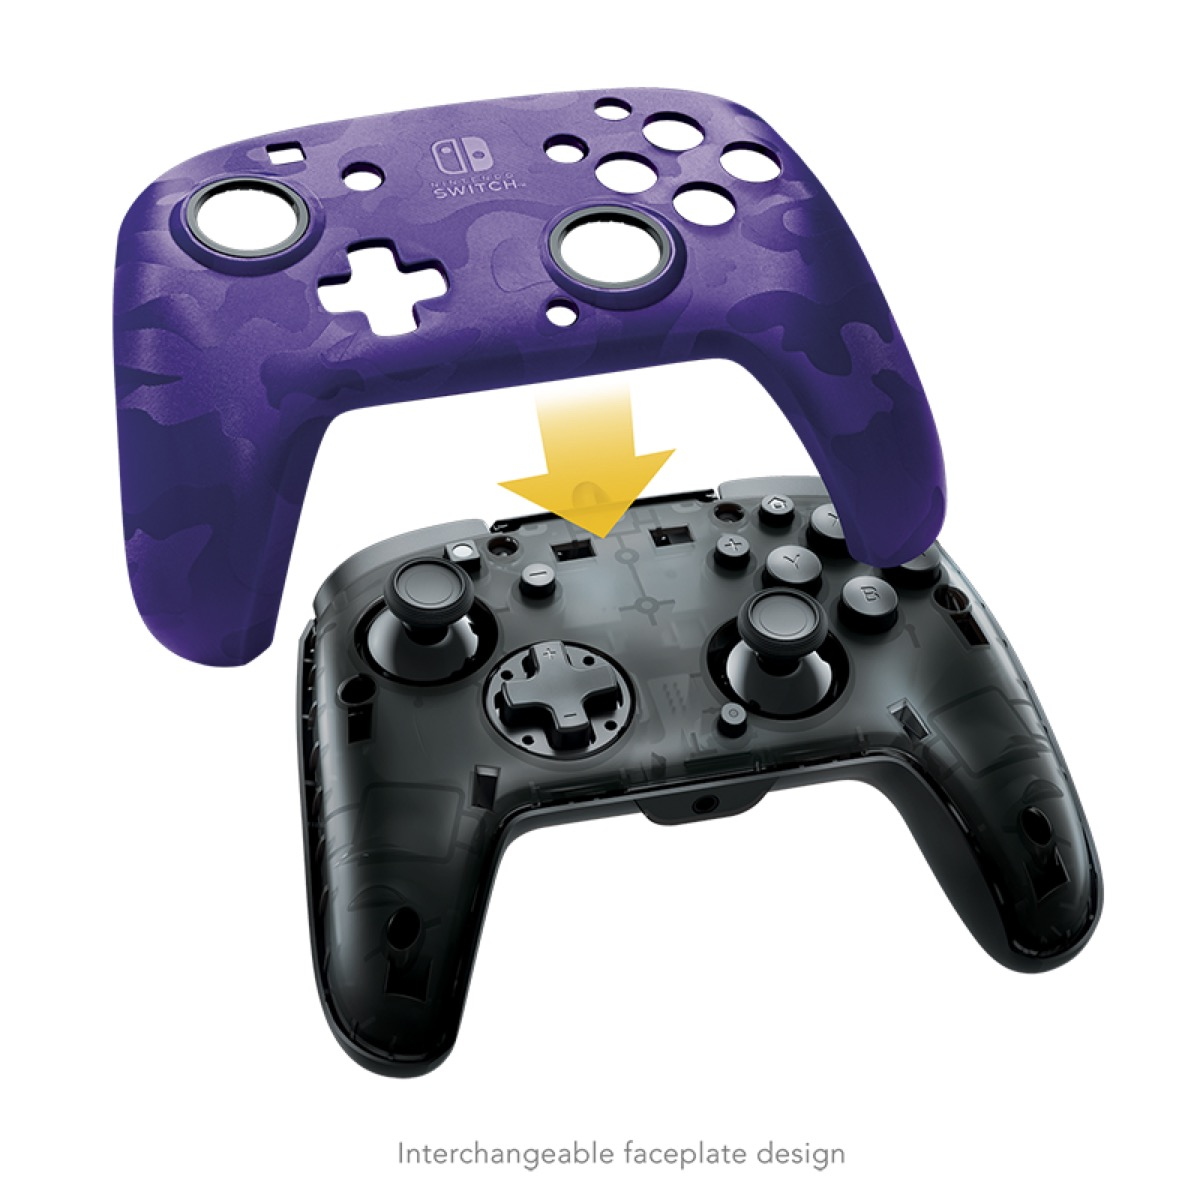 Nintendo Switch Pdp Controller